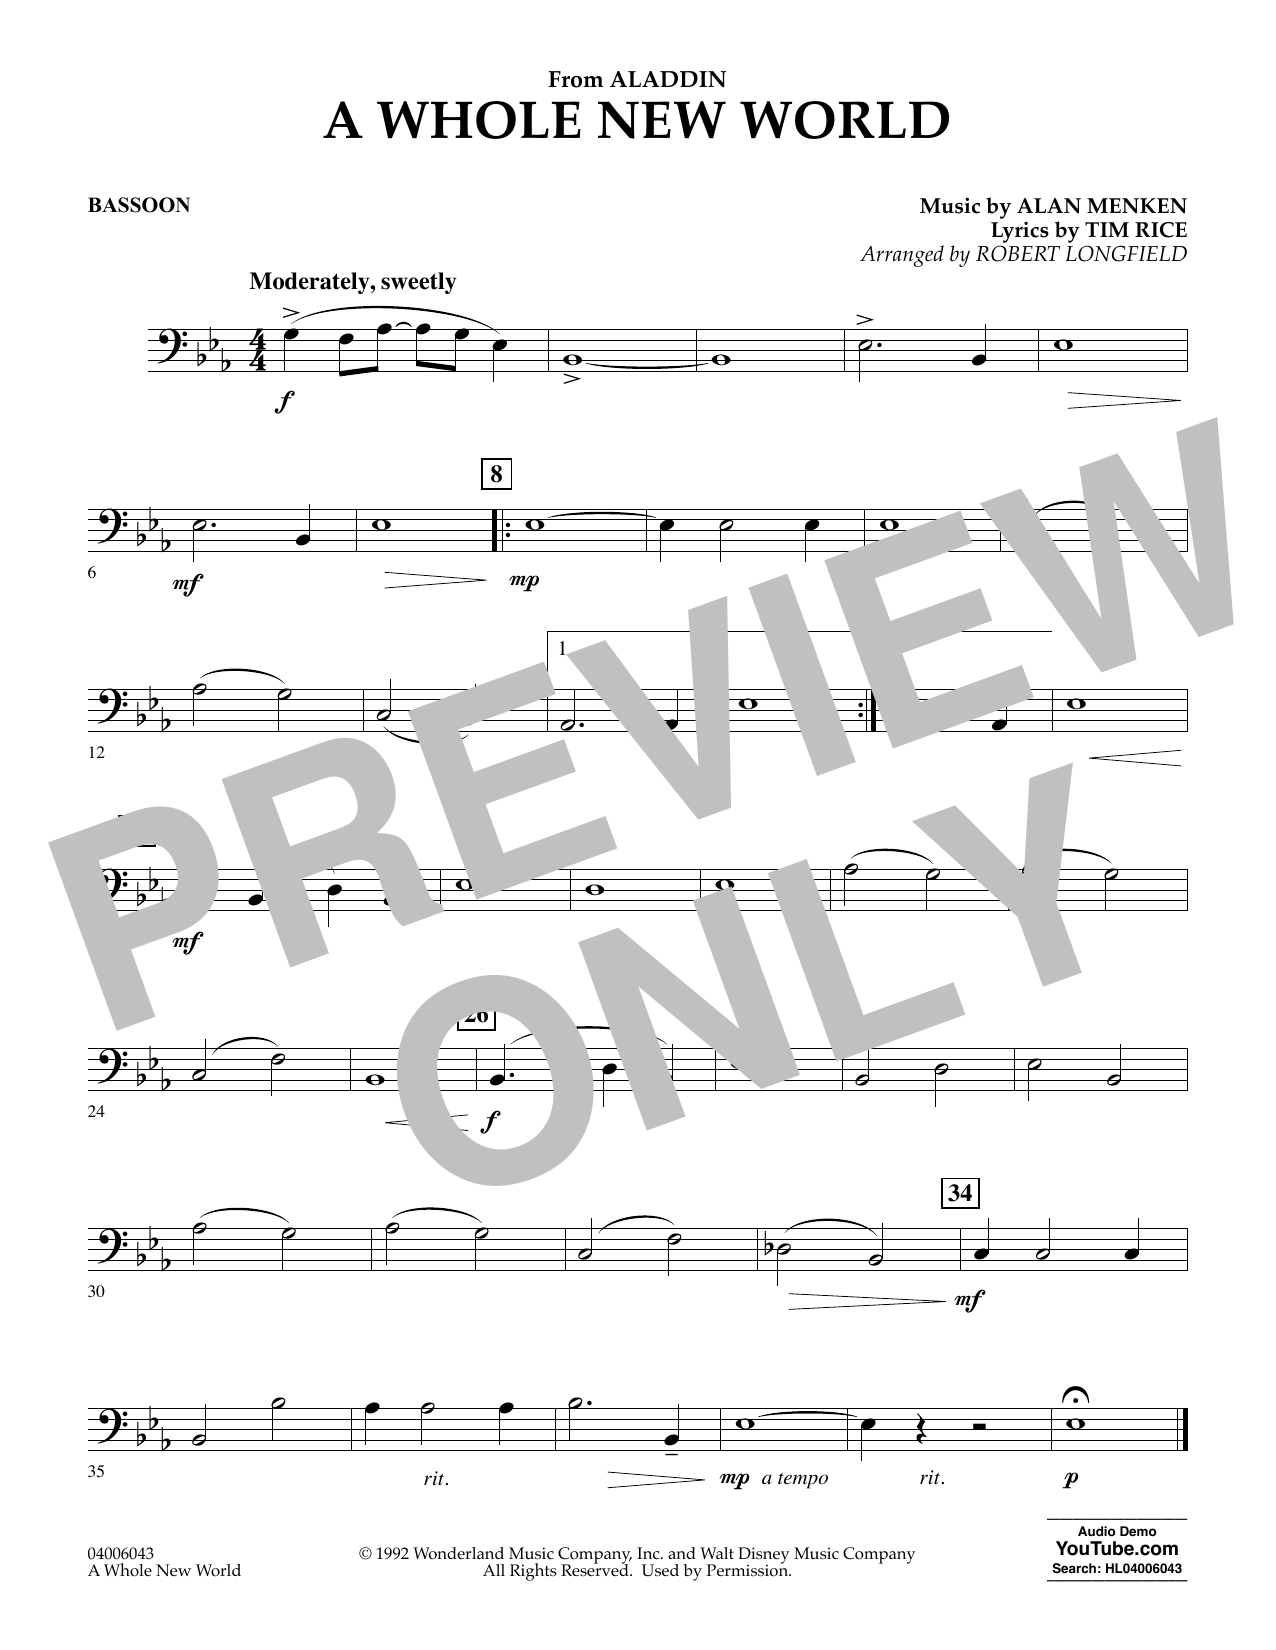 Download Alan Menken 'A Whole New World (from Aladdin) (arr. Robert Longfield) - Bassoon' Digital Sheet Music Notes & Chords and start playing in minutes